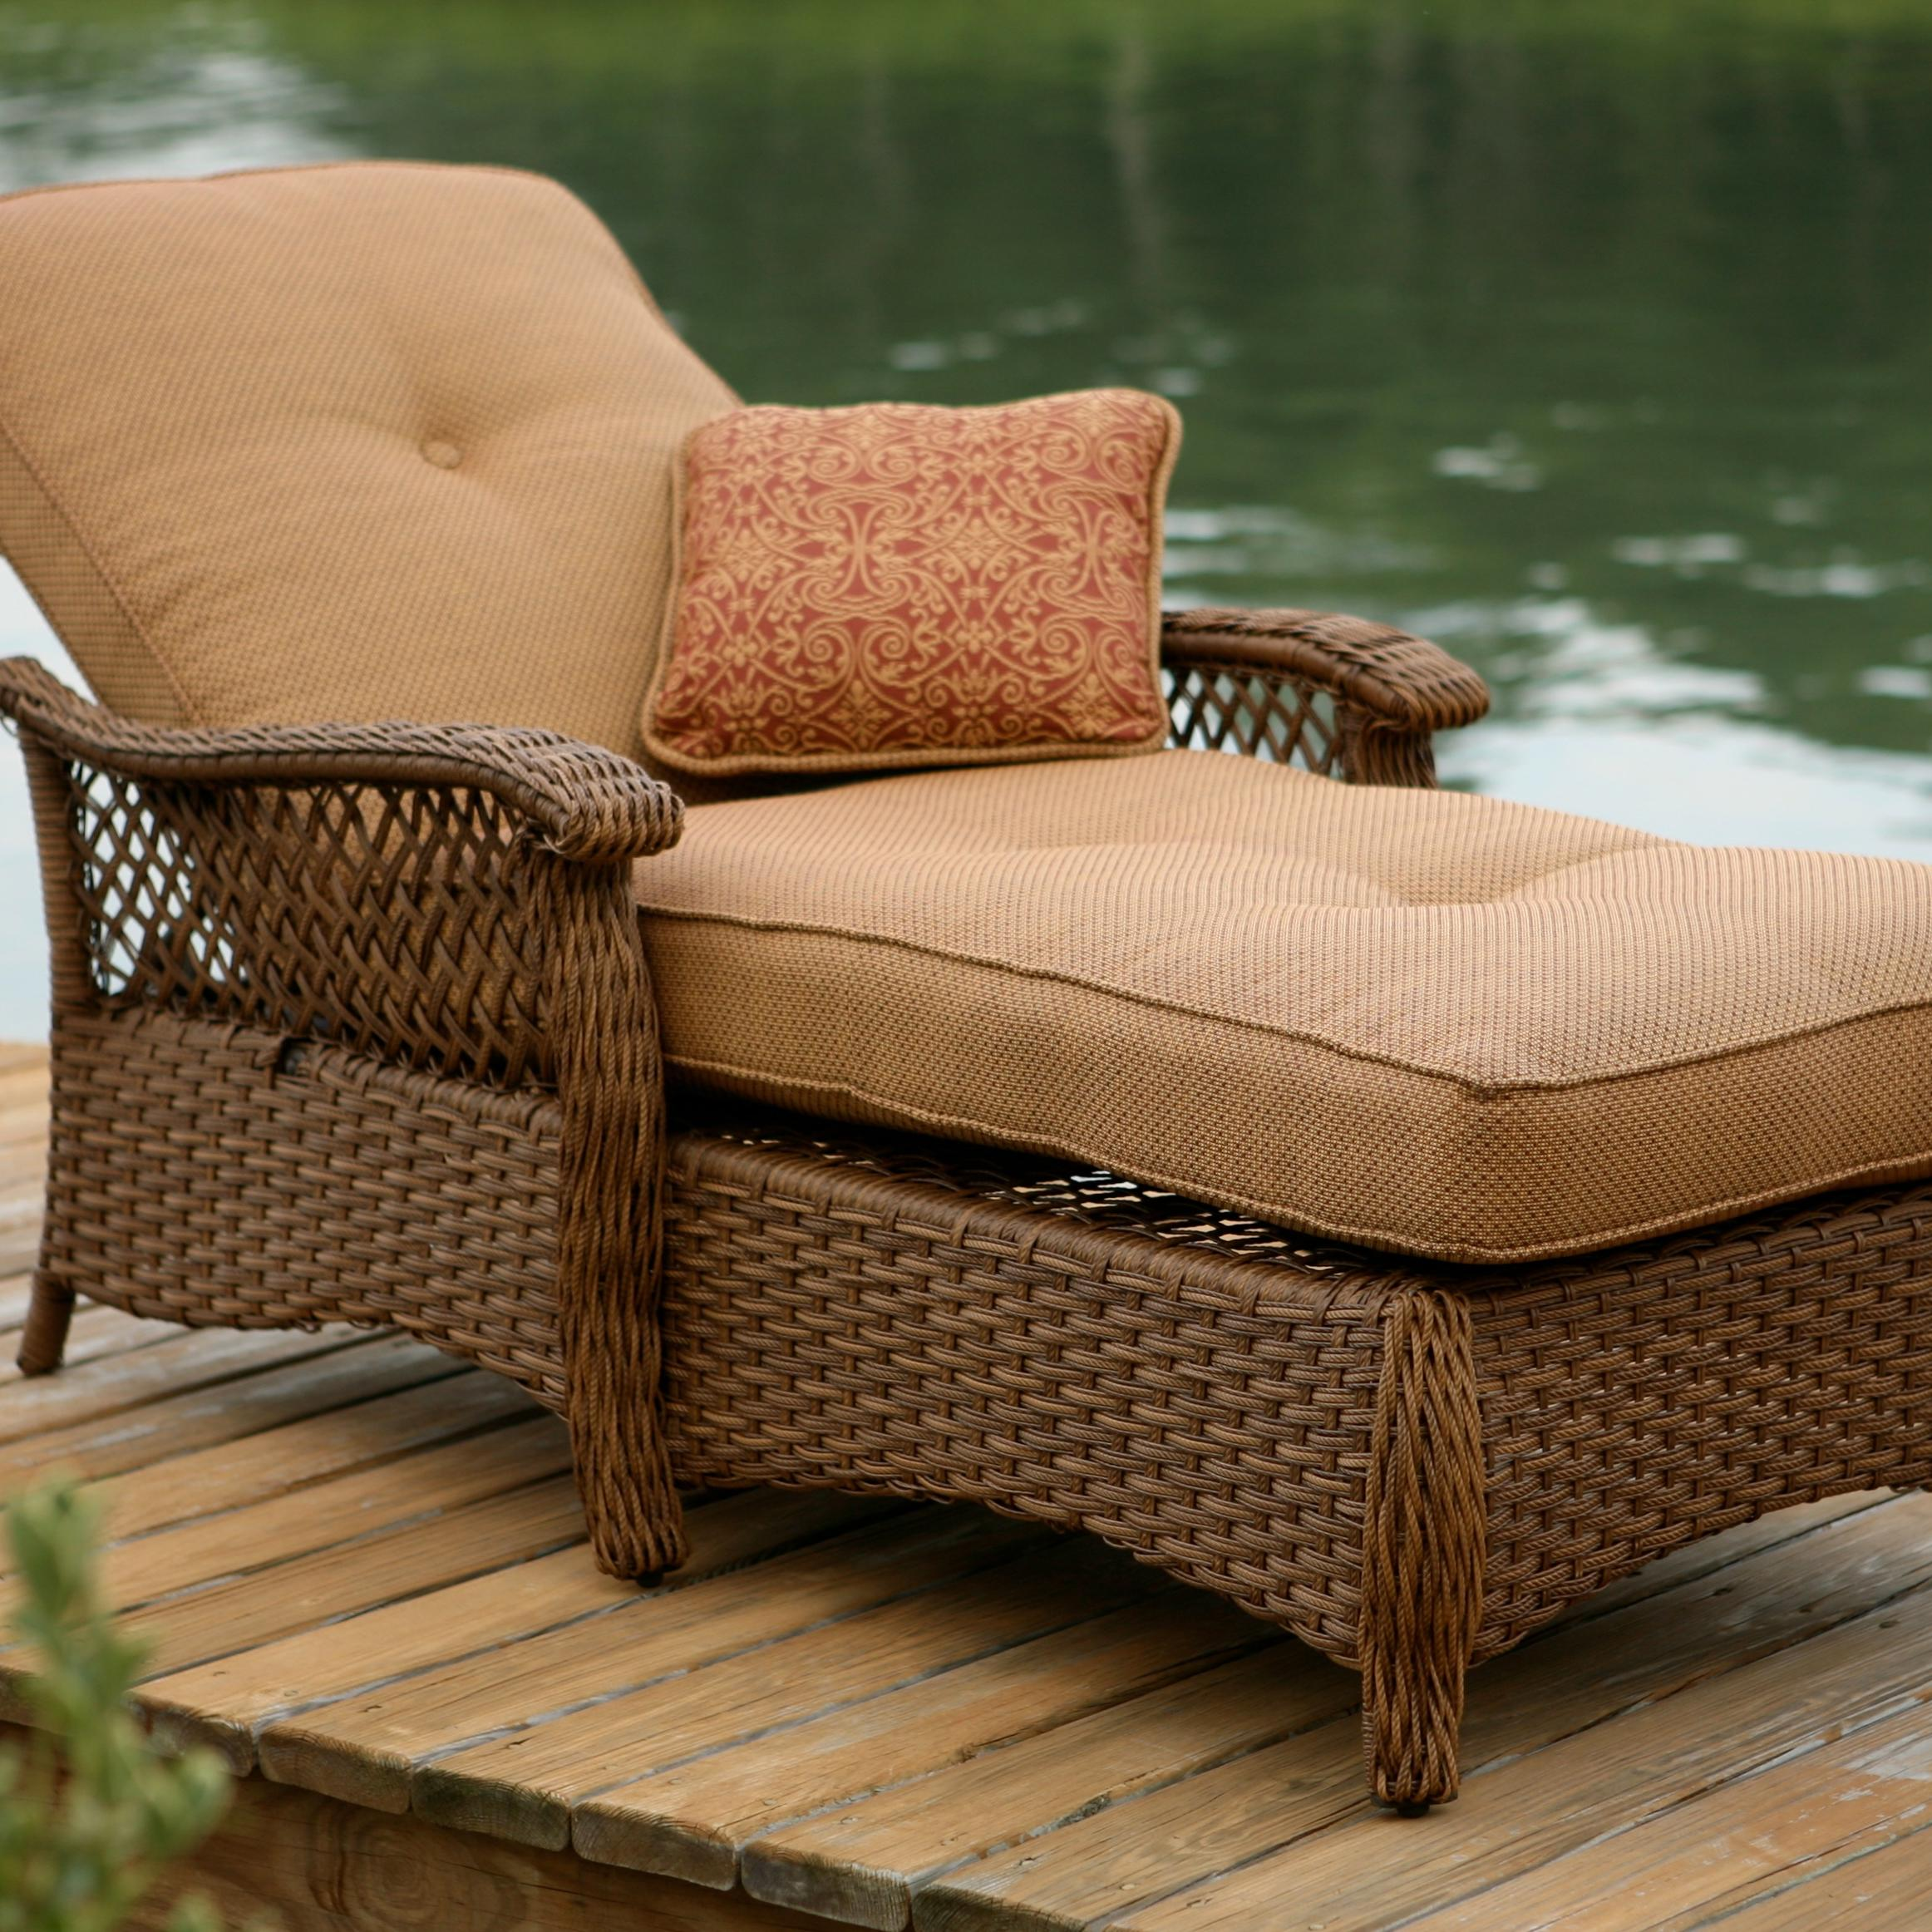 Agio Veranda  Agio Outdoor Tan Woven Chaise Lounge Chair With Seat And Back  Cushion   AHFA   Outdoor Chaise Lounge Dealer Locator